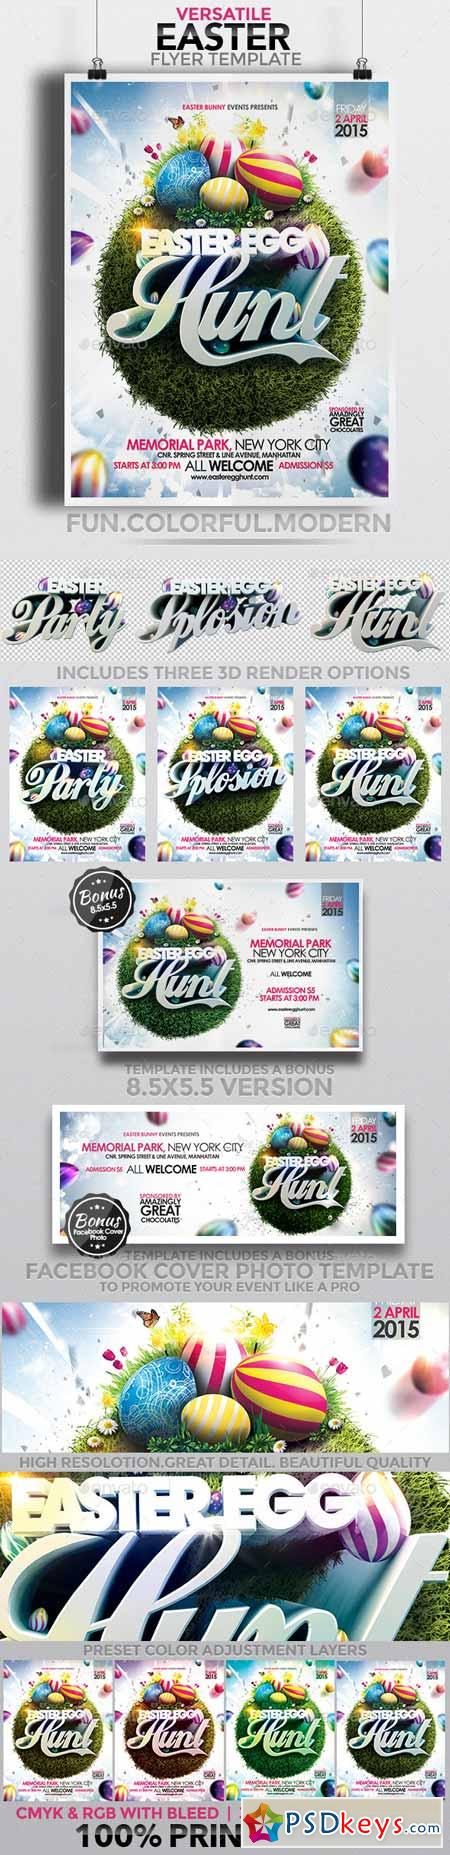 Versatile Easter Flyer Template 10514029